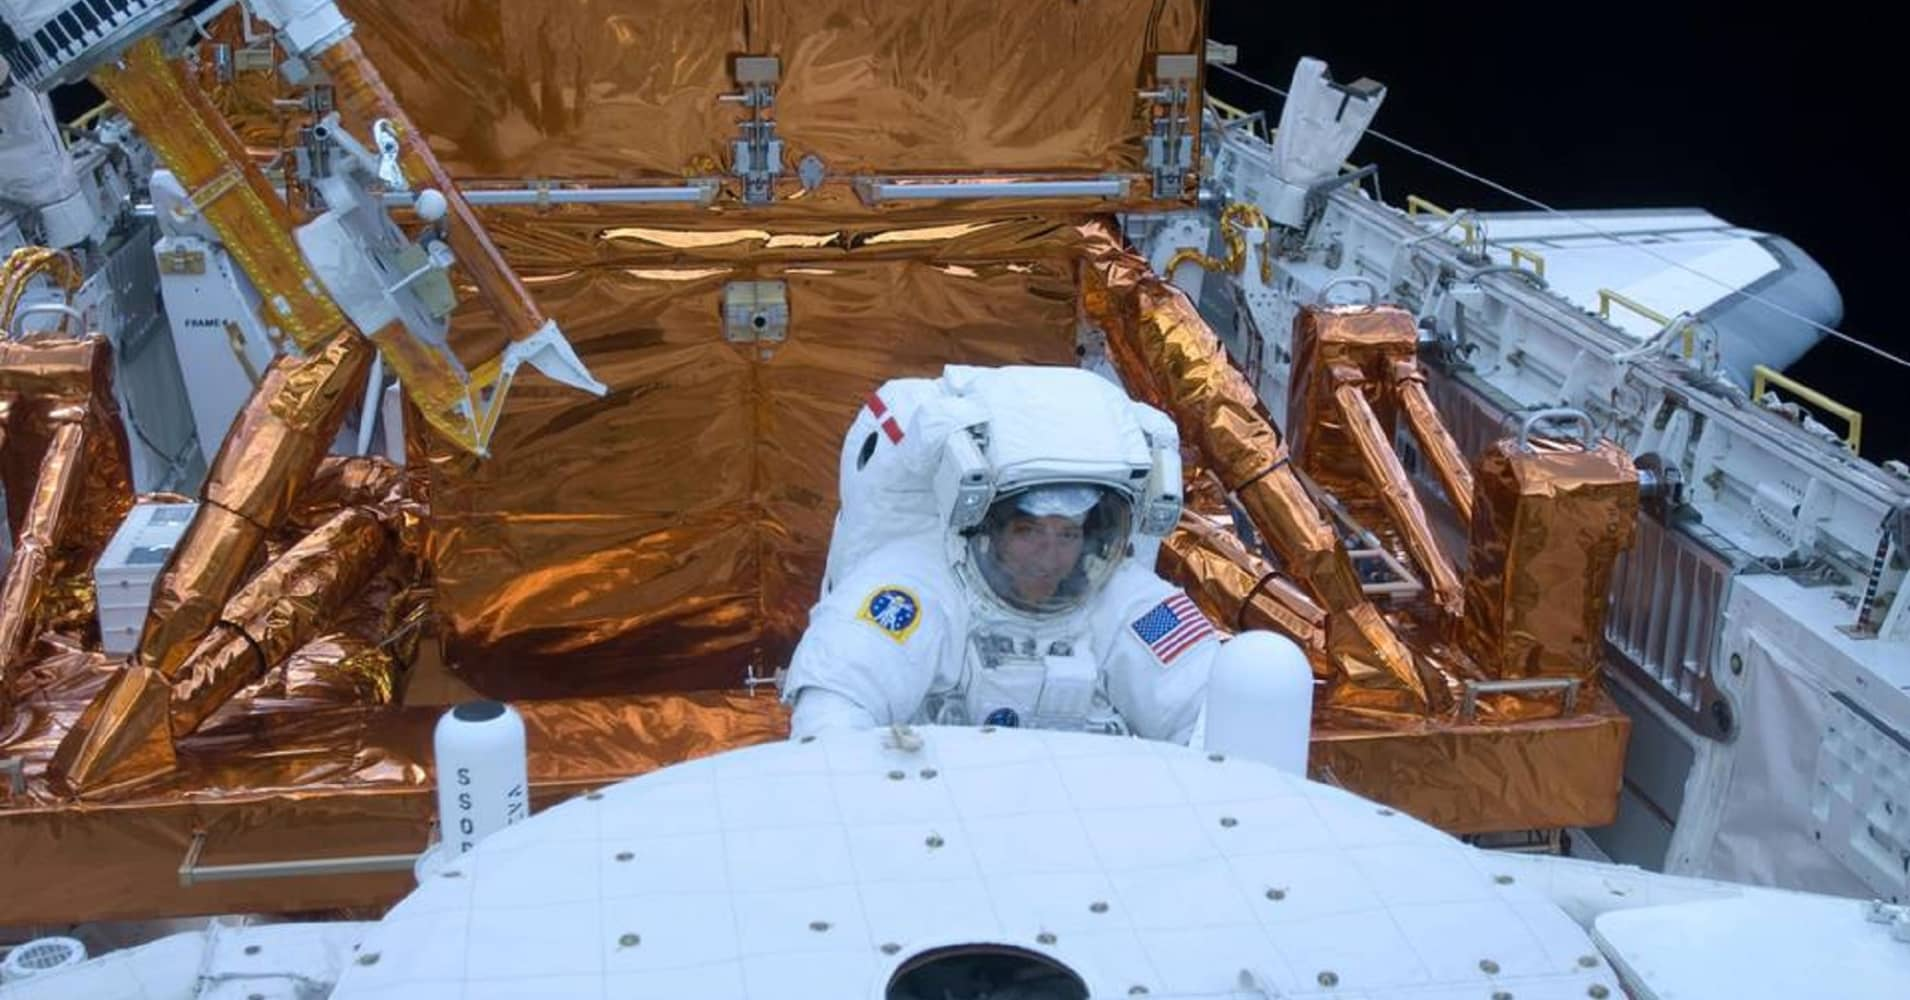 STS-125 Mission Specialist Mike Massimino works with the Hubble Space Telescope in the cargo bay of the Earth-orbiting space shuttle Atlantis on May `15, 2009.